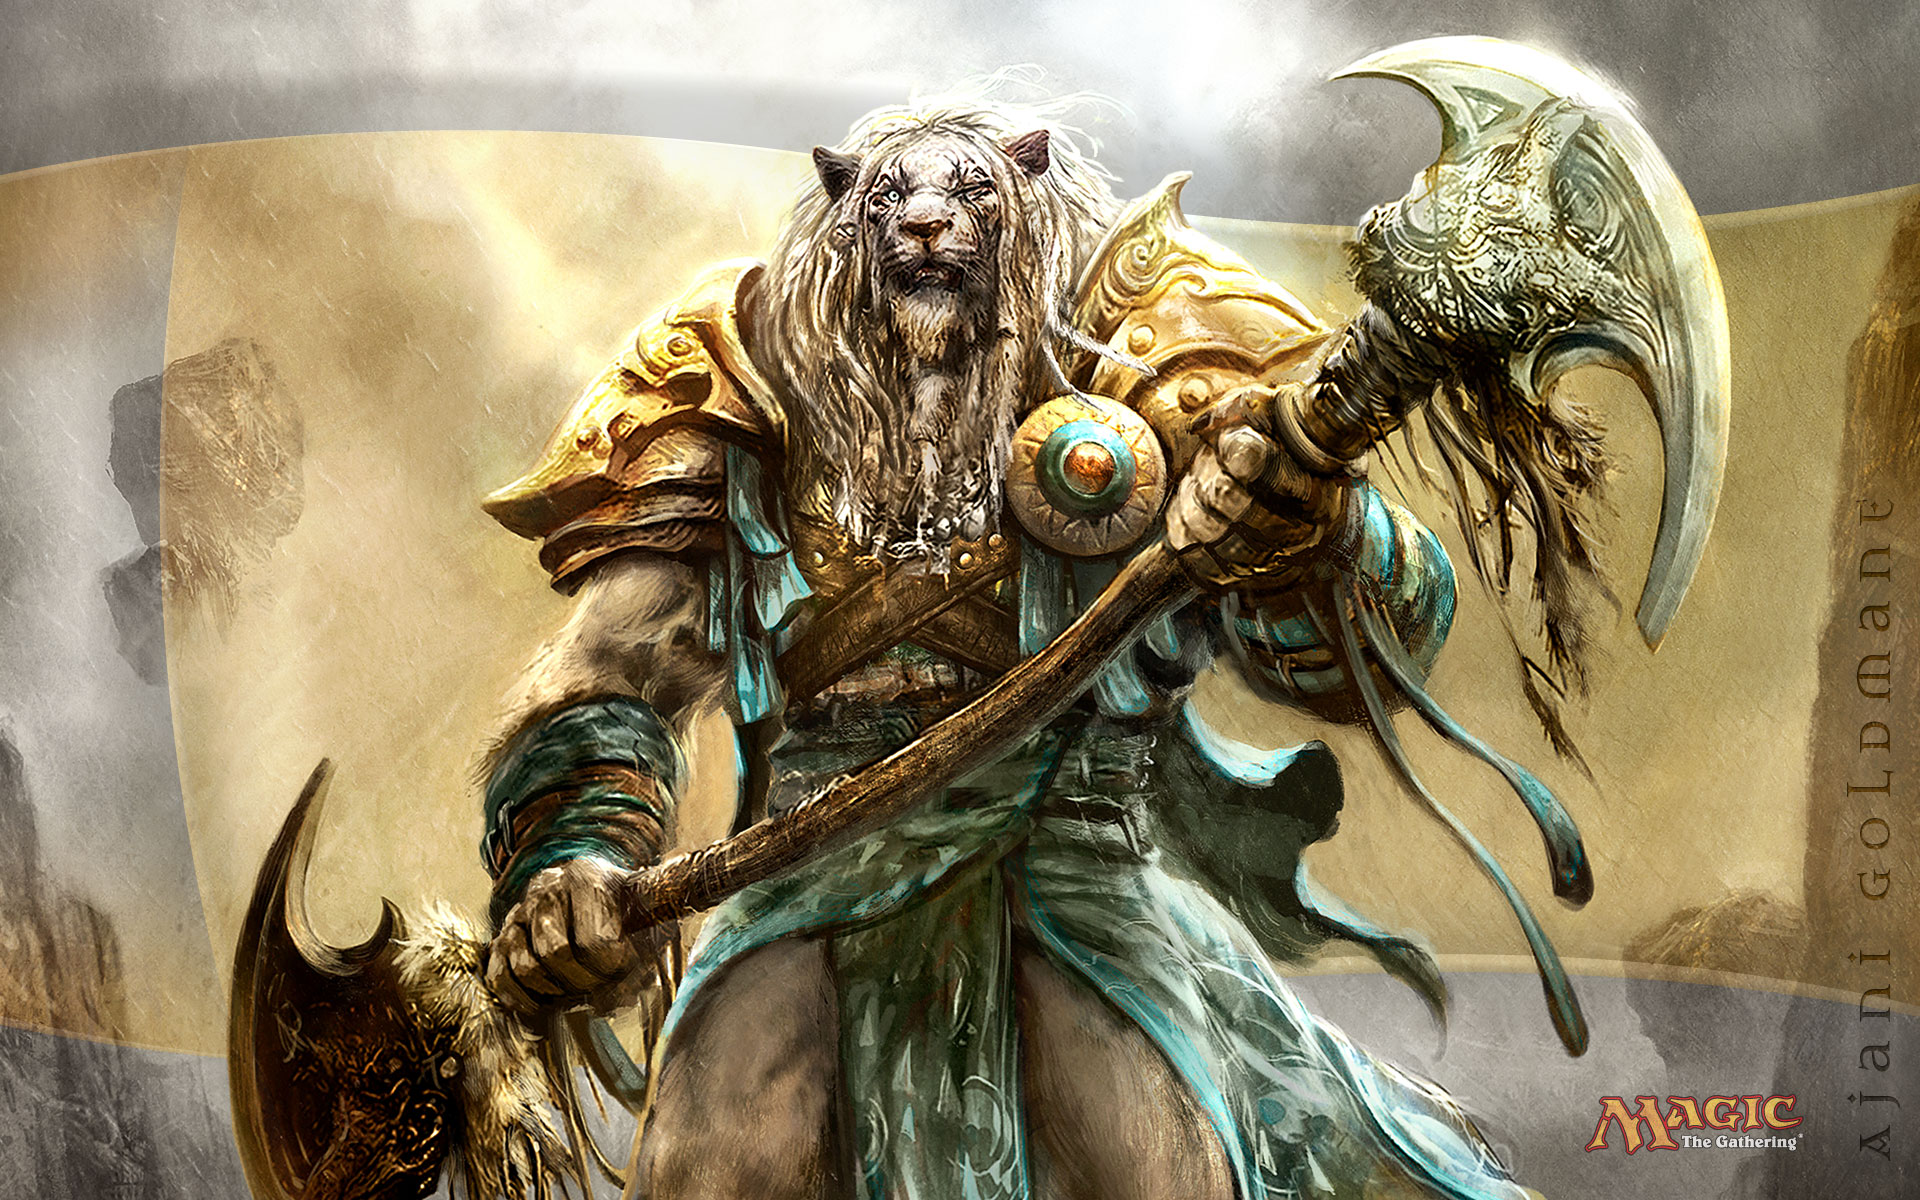 Cool Warrior Lion Wallpaper Desktop 1920x1200